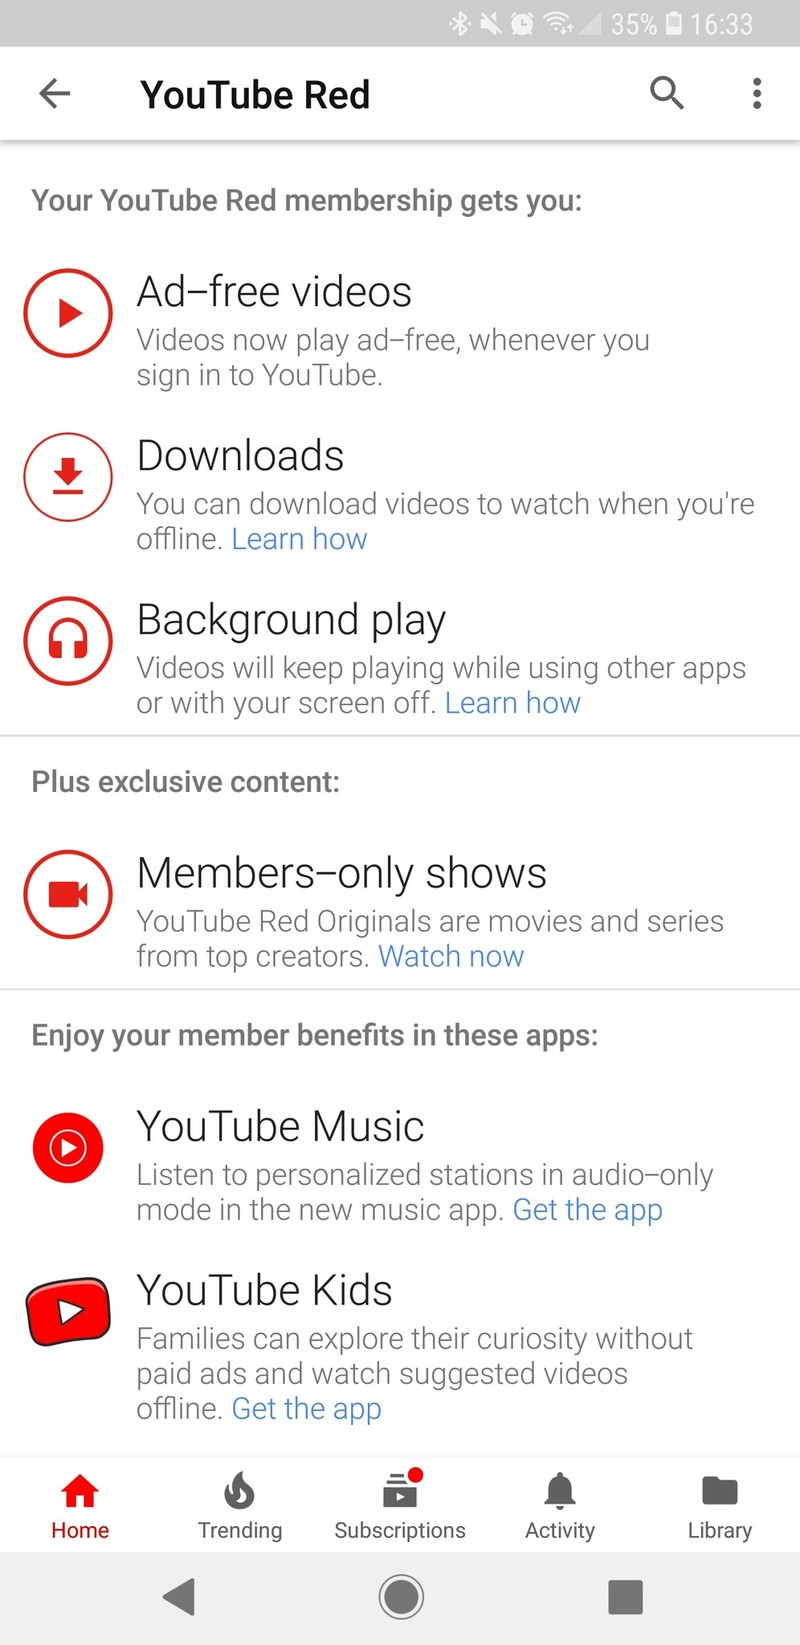 youtube-red-benefits-screenshot.jpg?itok